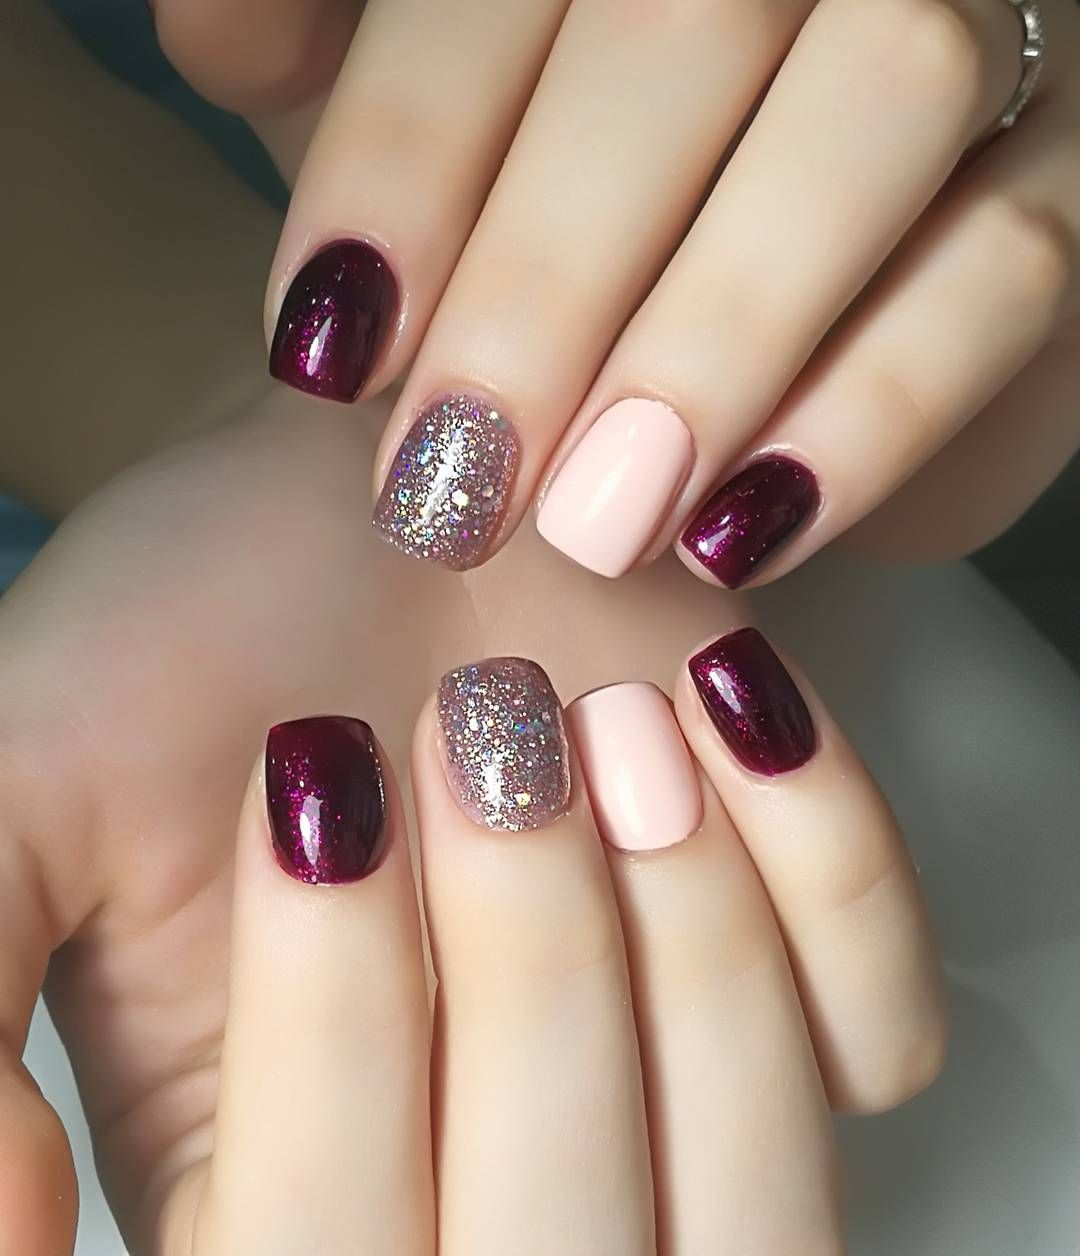 15 Trending Nail Designs That You Will Love! - Best Nail Art - 15 Trending Nail Designs That You Will Love Manicure, Makeup And